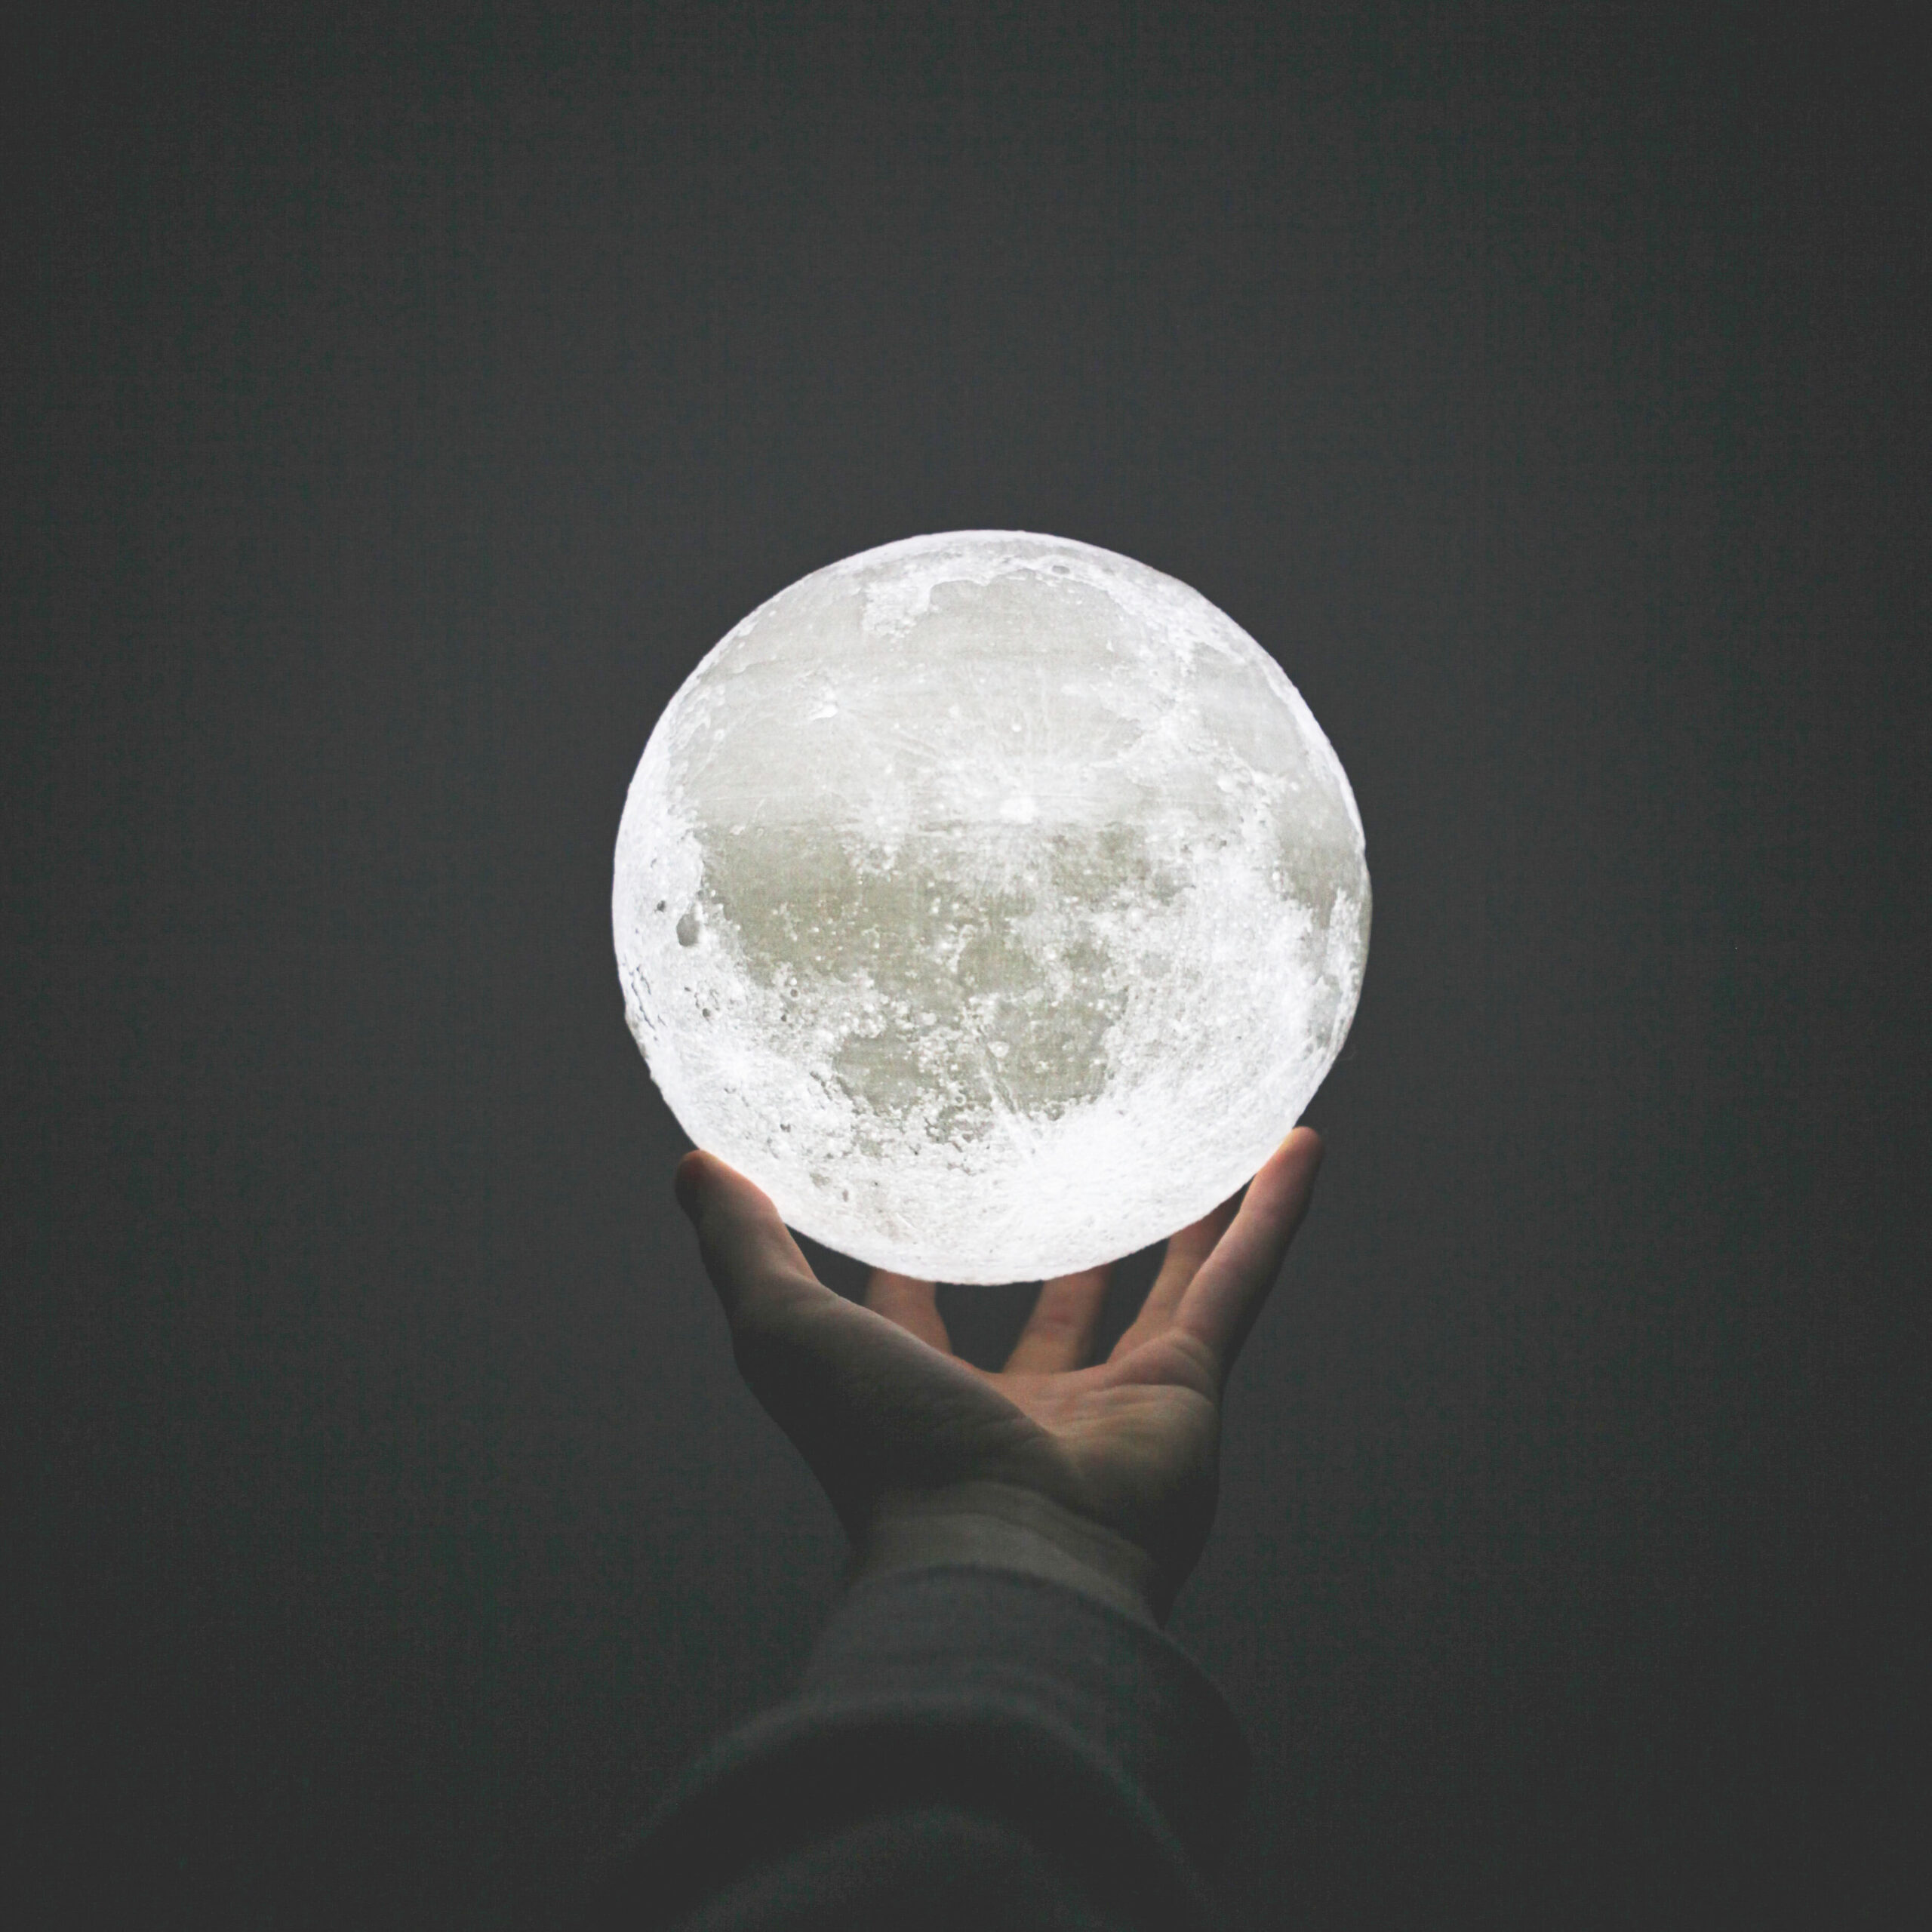 Holding-the-moon-Jasper-Benning-via-Unsplash